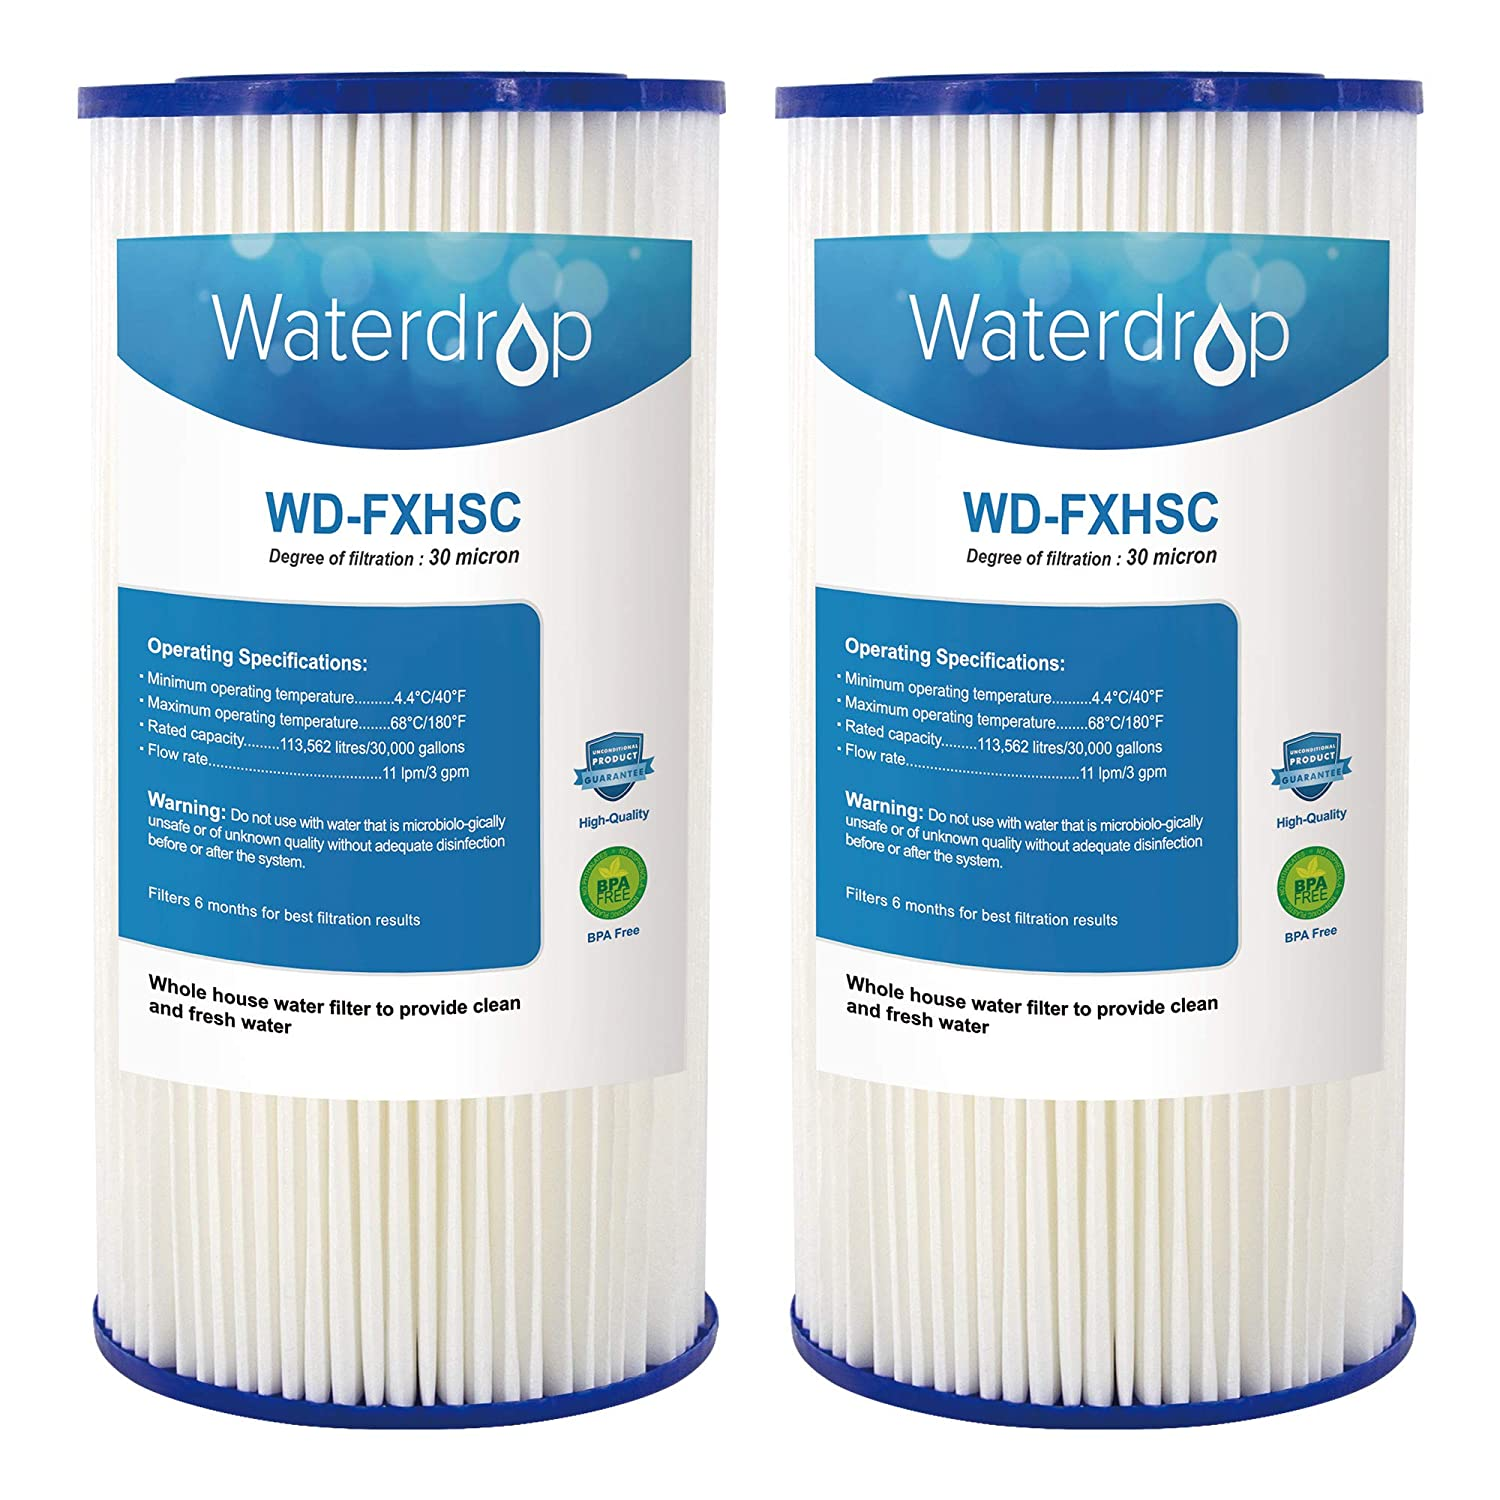 Waterdrop Whole House Sediment Filter, Compatible with GE FXHSC, Culligan R50-BBSA, Pentek R50-BB and DuPont WFHDC3001,American Plumber W50PEHD, GXWH40L, GXWH35F, GNWH38S, GXWH38F (Pack of 2)